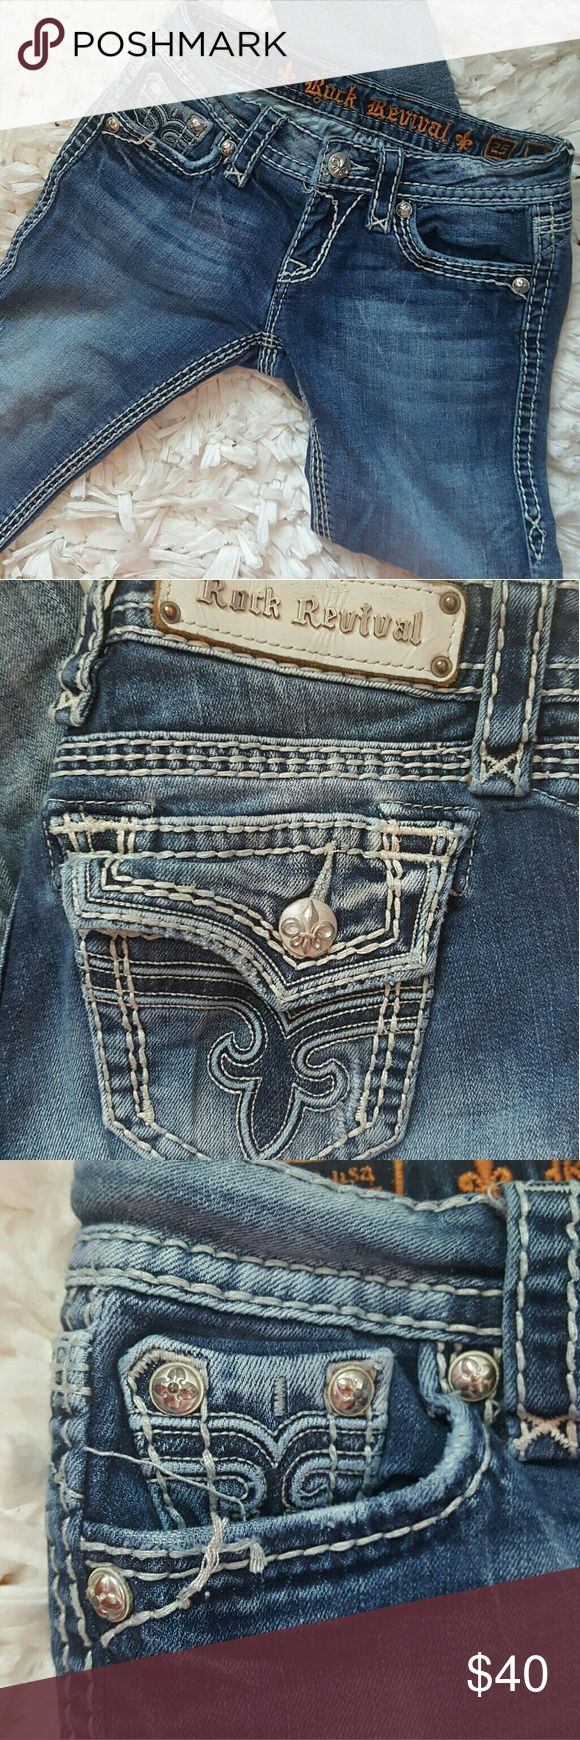 Rock Revival Kai Skinny Jeans Rock revival kai skinny jeans from Buckle. Obvious signs of wear but in good condition. Loose threading from right pocket. Very comfortable. These were my favorite pair of rocks! Only letting go because they no longer fit. Rock Revival Jeans Skinny